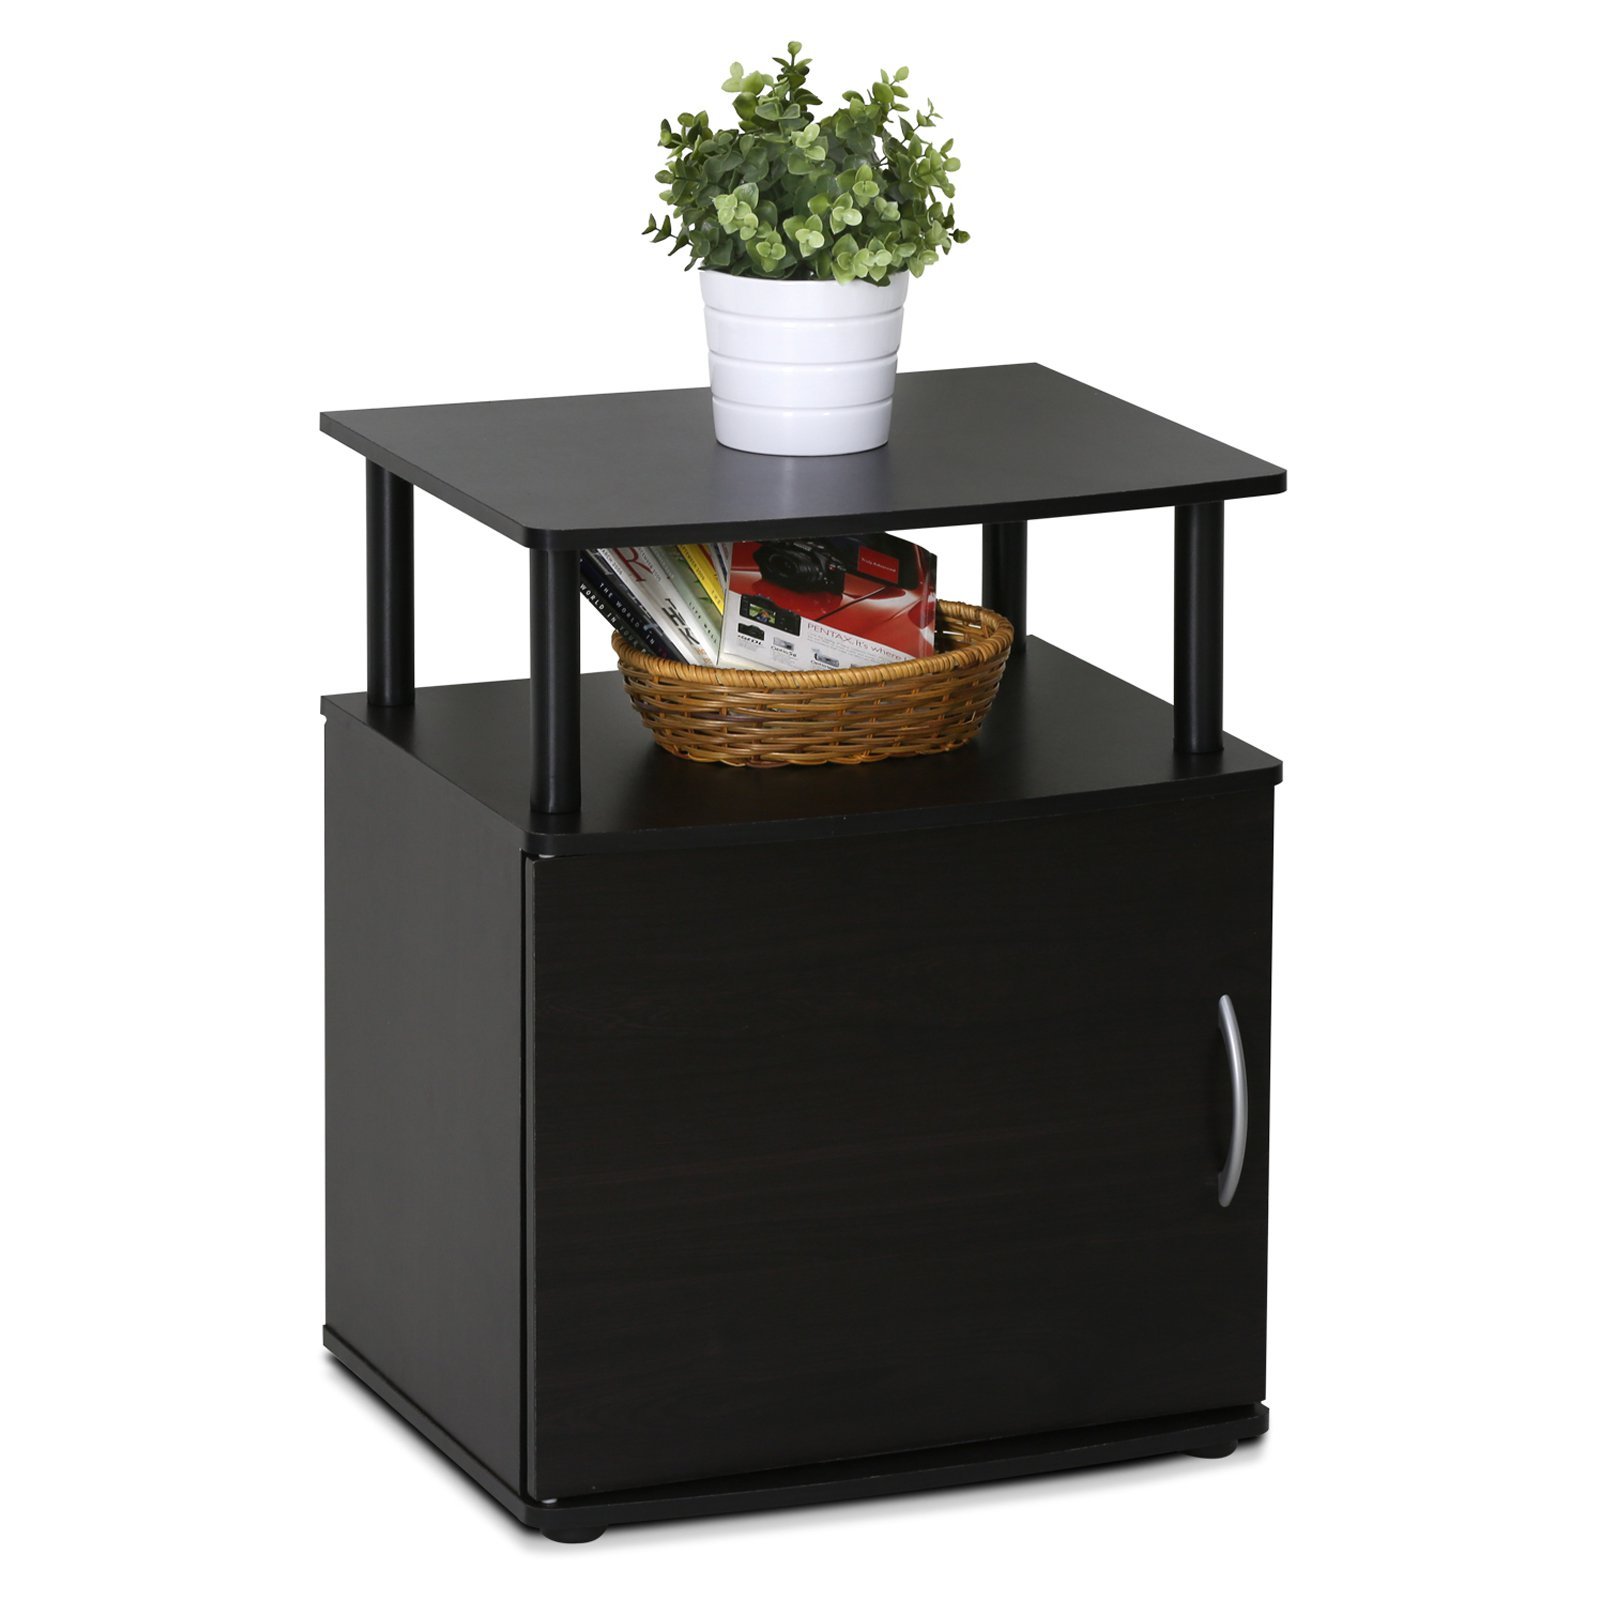 Furinno JAYA Utility Design End Table, 15114BKW by Overstock